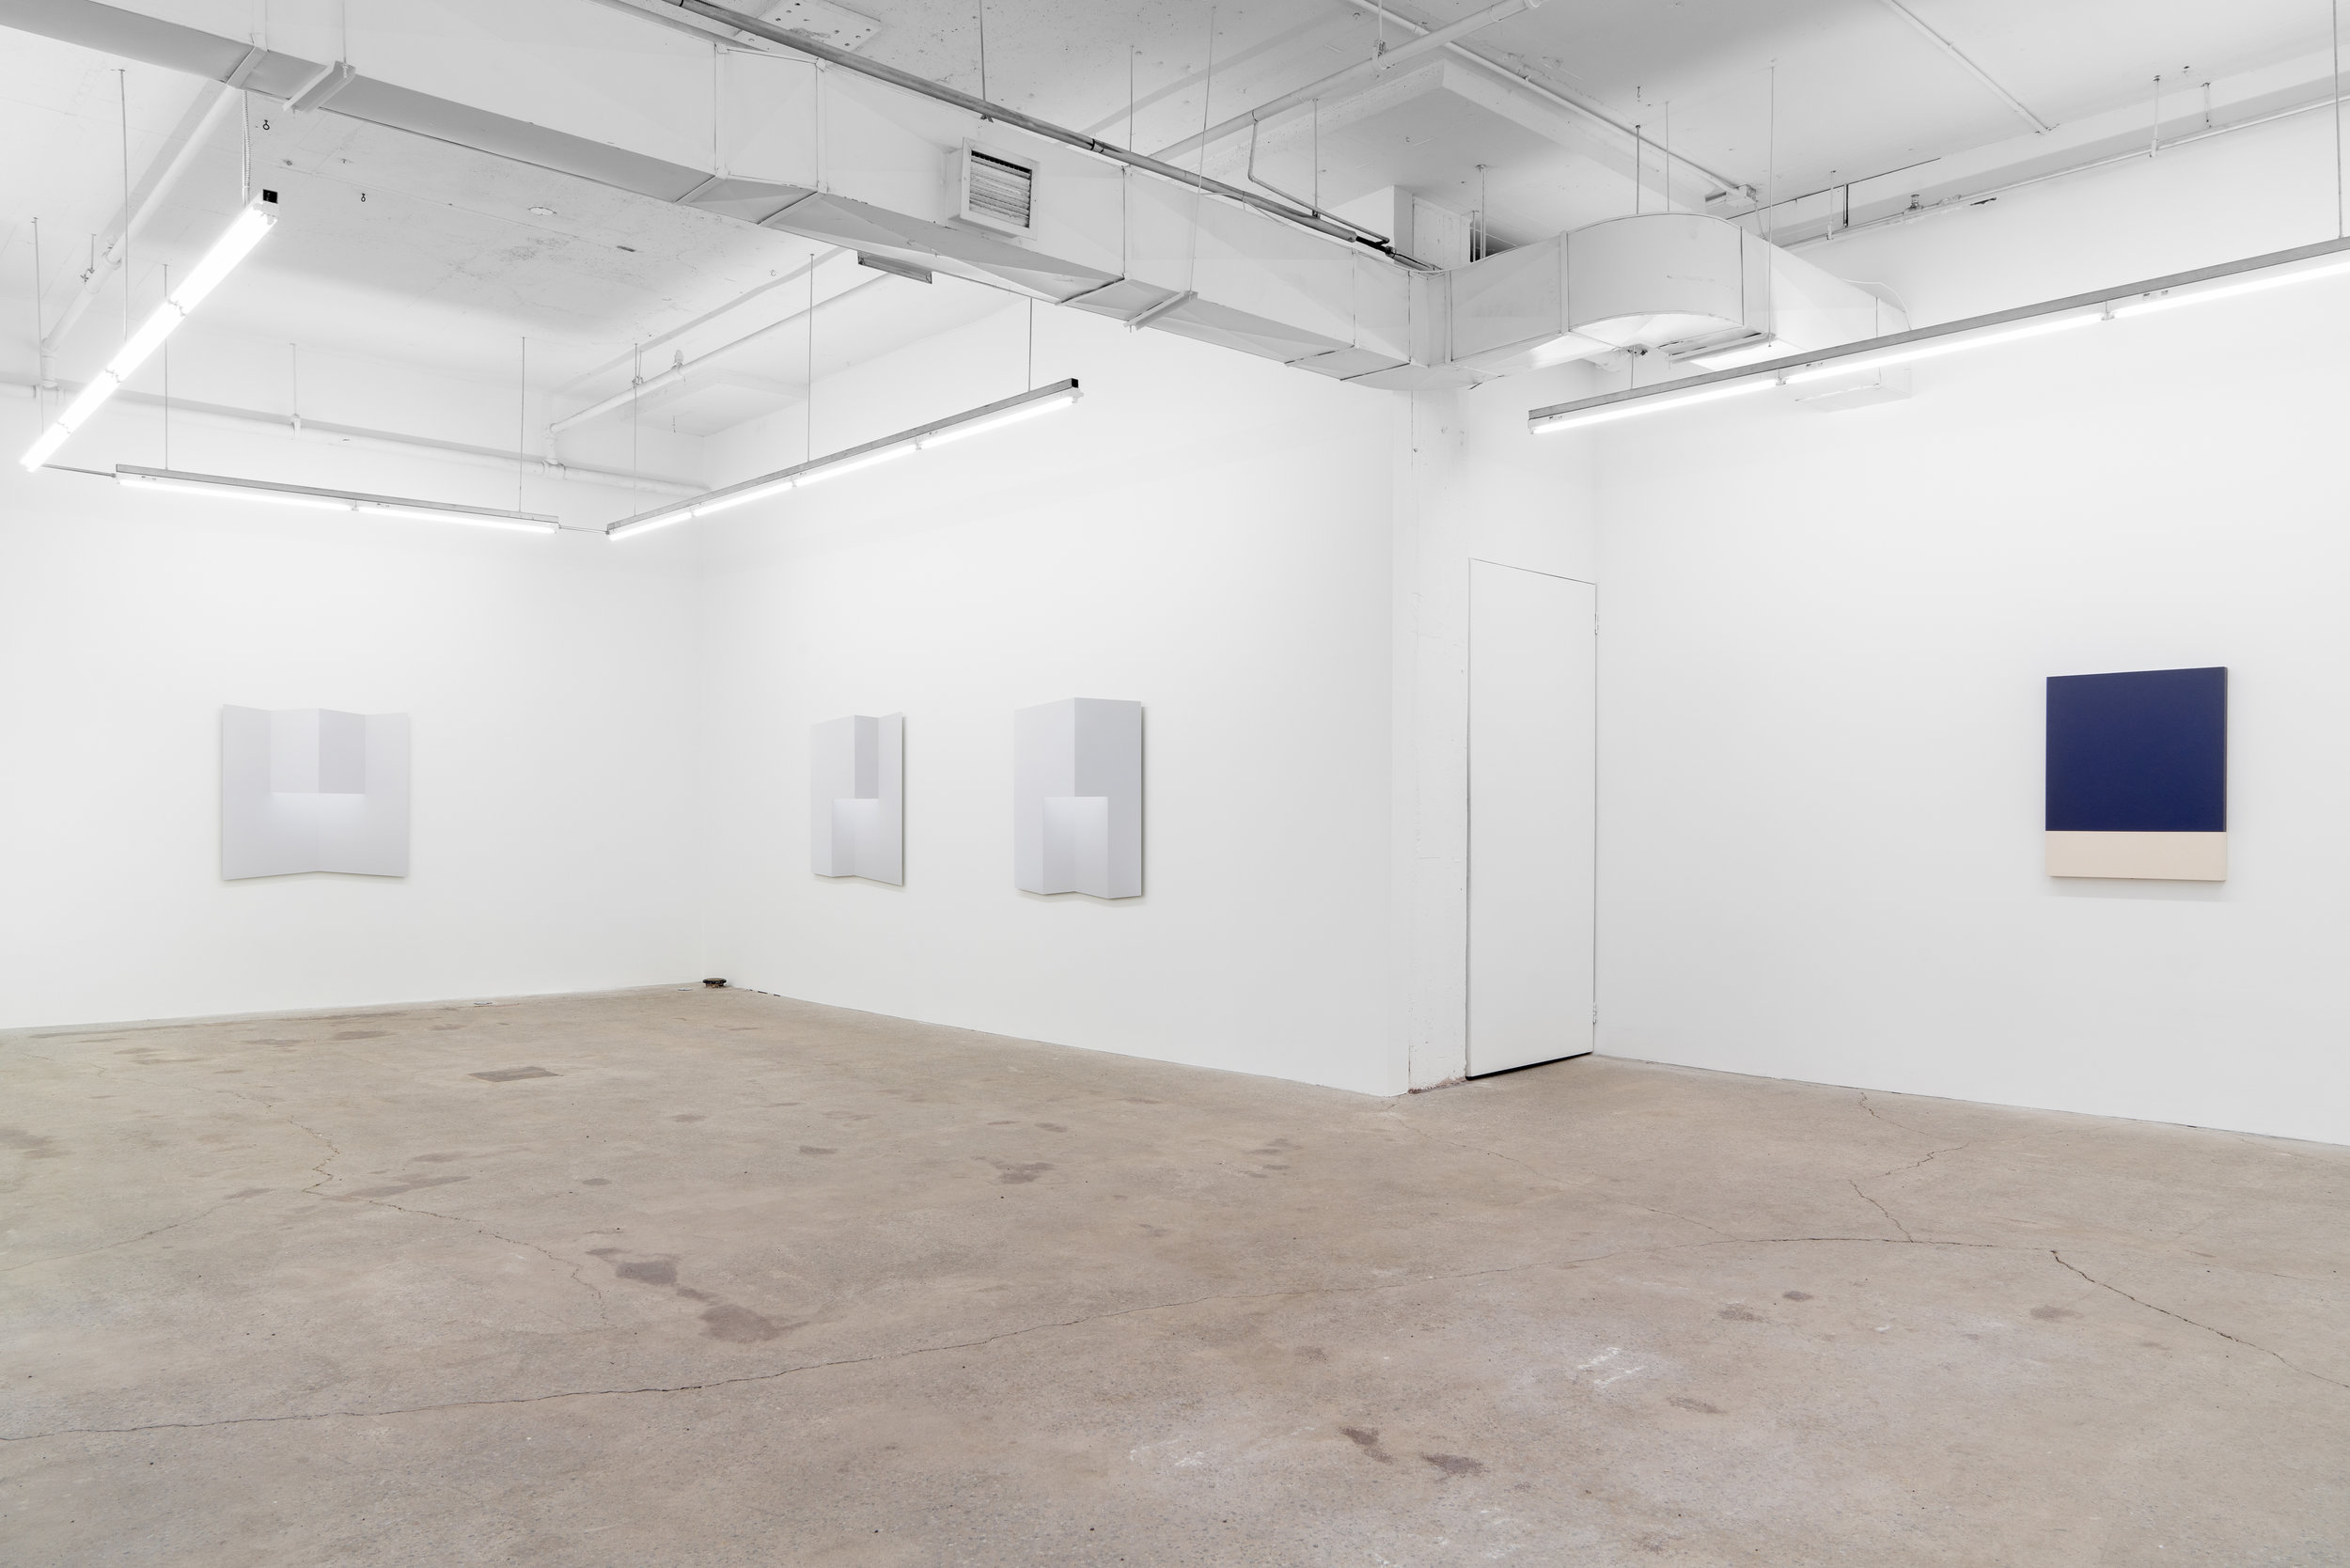 Caroline Cloutier,  Pliages , 2018, exhibition view, Galerie Nicolas Robert, photo : Jean-Michael Seminaro